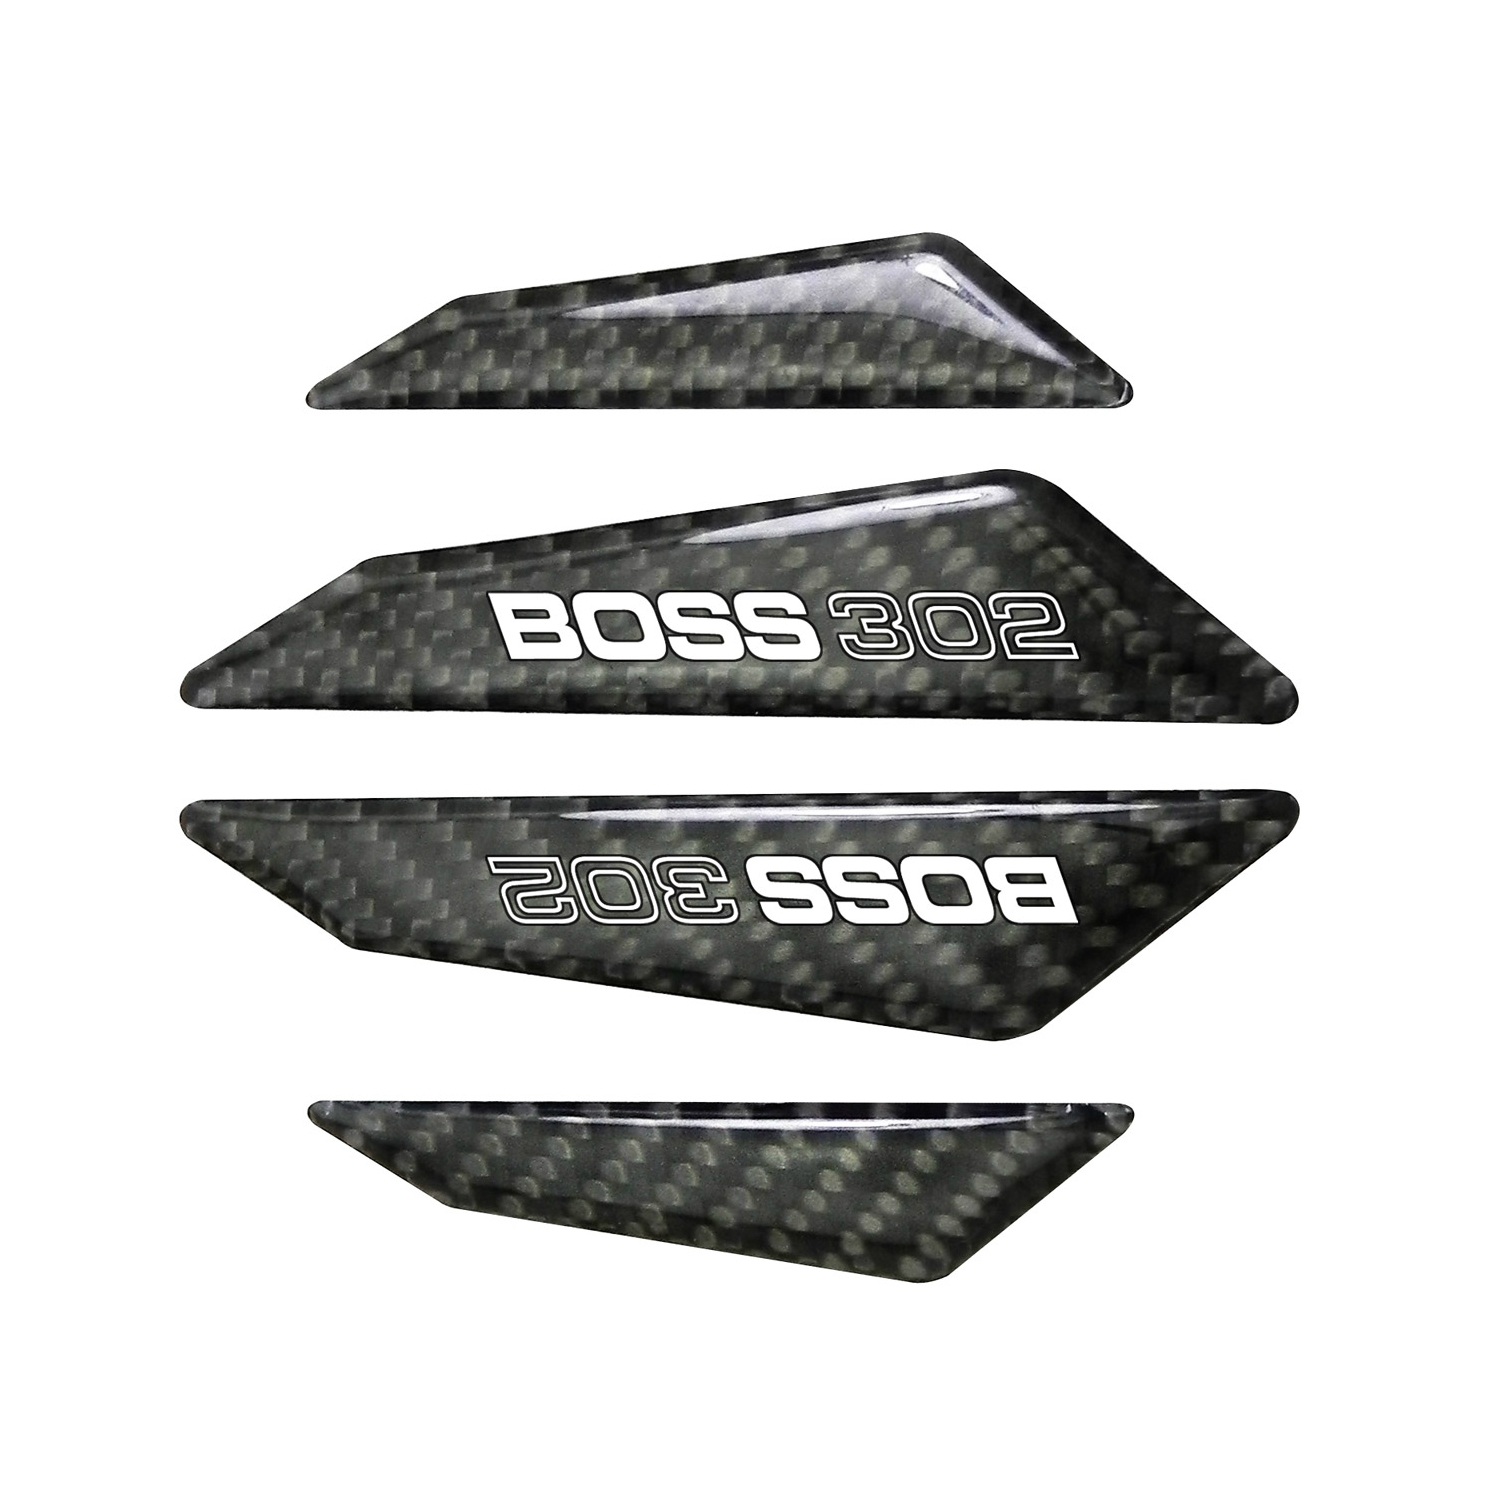 Ford Mustang Boss 302 Real Black Carbon Fiber Door Edge Guard Decal